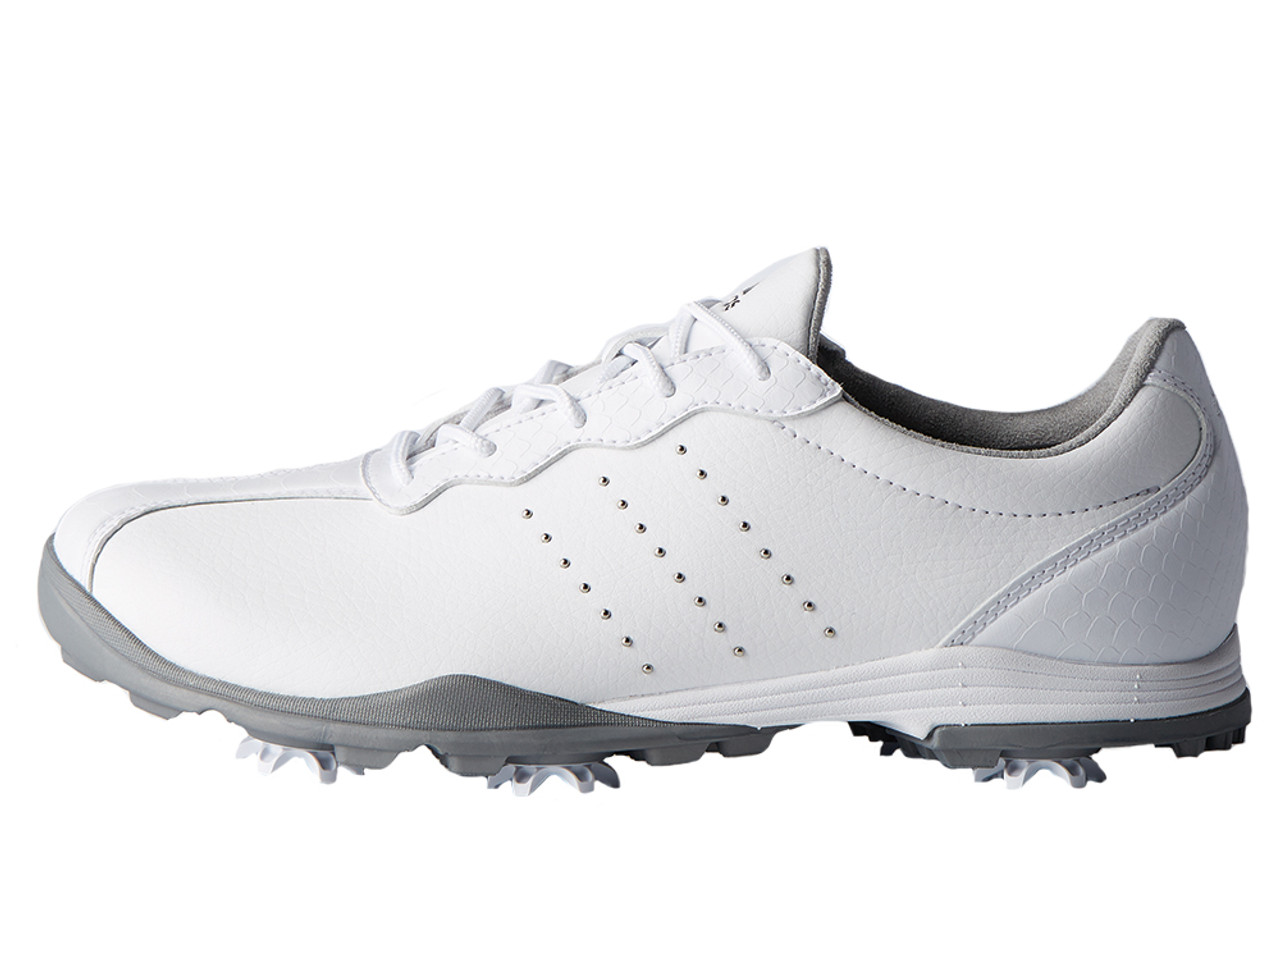 new products 93685 810fc Adidas W Adipure DC Golf Shoes - FTWR WhiteSilver Met.